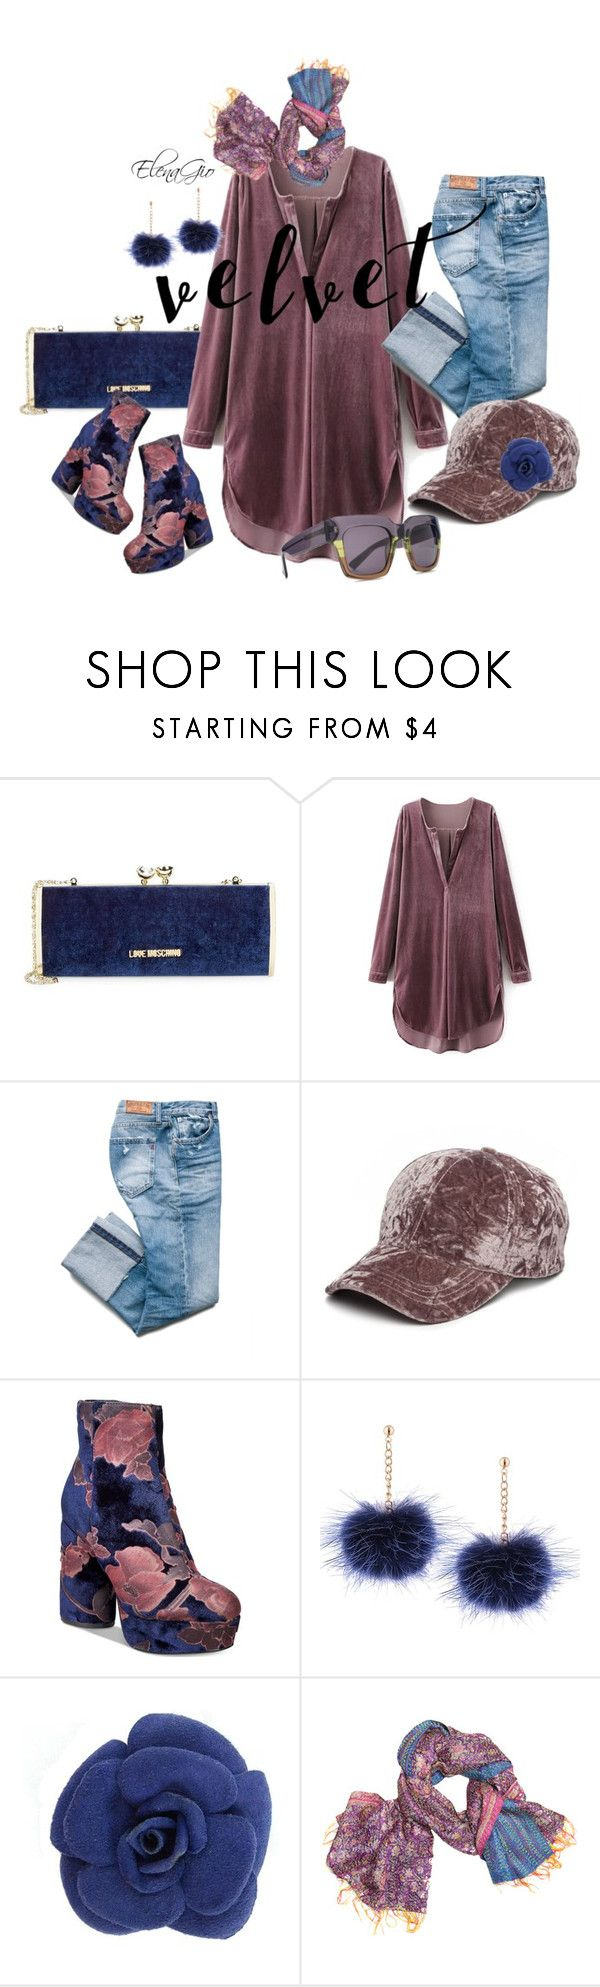 """""""Senza titolo #2273"""" by elenagio ❤ liked on Polyvore featuring Love Moschino, Collection XIIX, Call it SPRING, Mélange Home and HOOK LDN"""